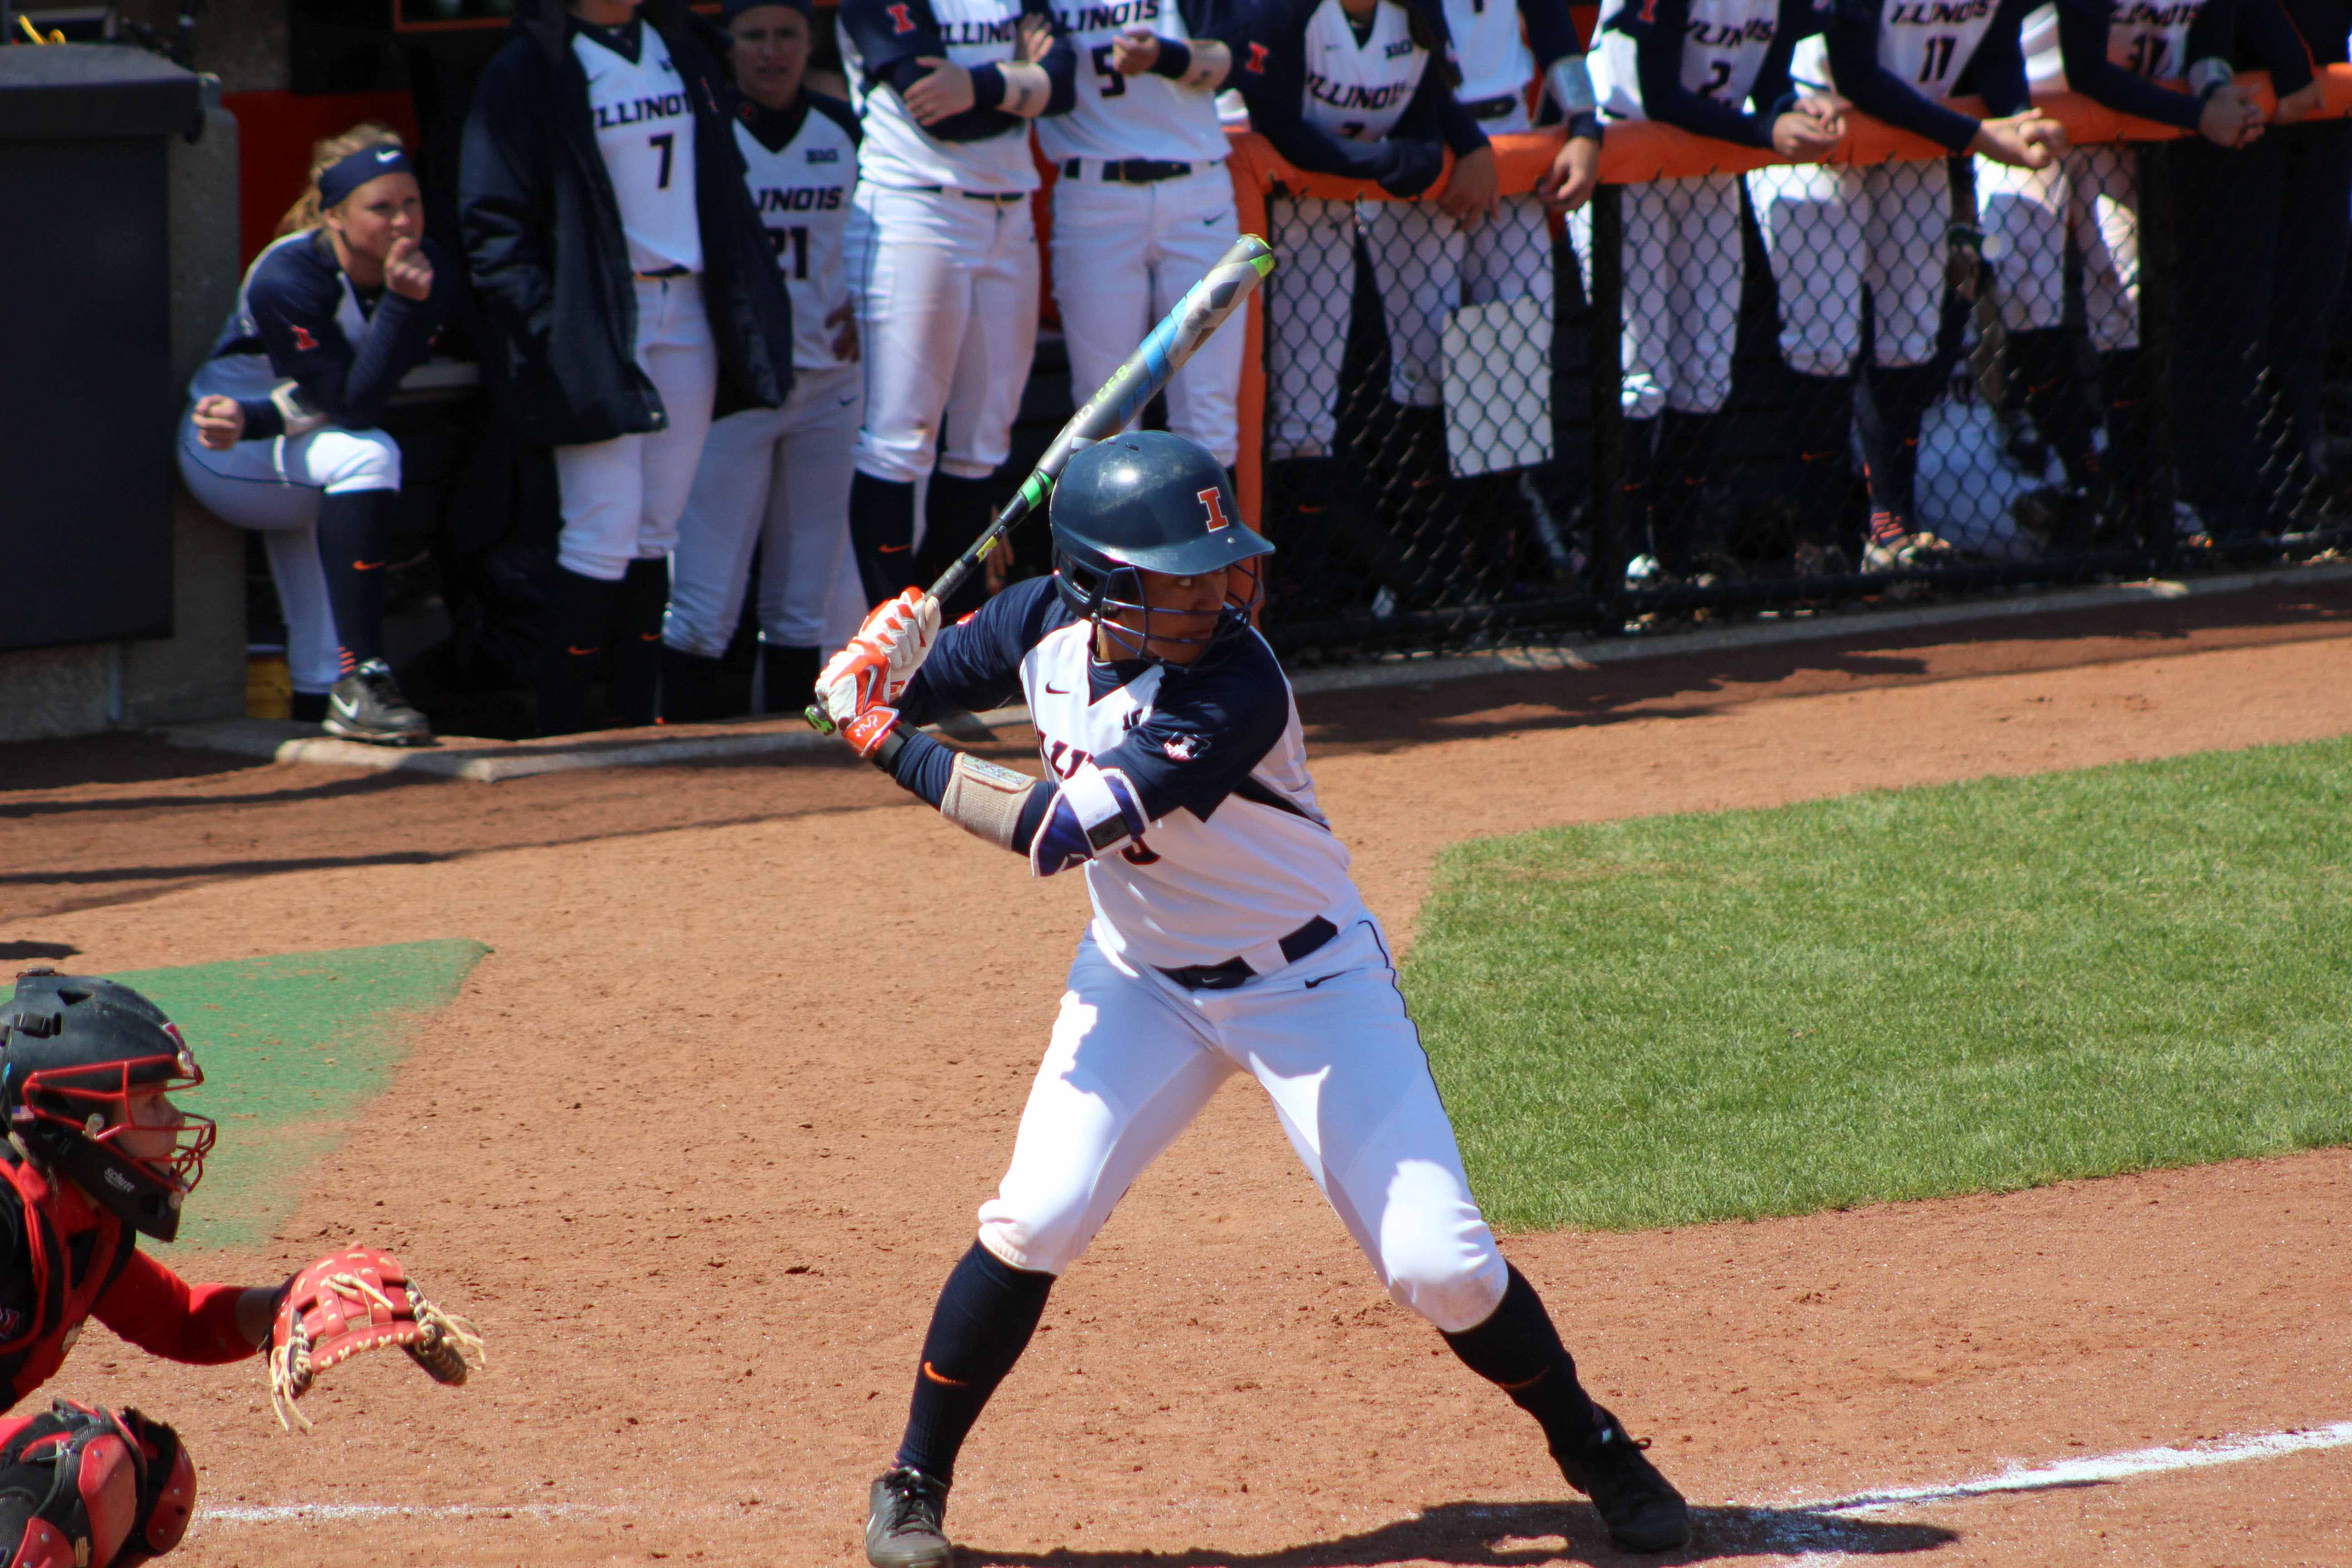 Illinois' Nicole Evans bats in the game against Rutgers at Eichelberger Field on Sunday, Apr. 3.